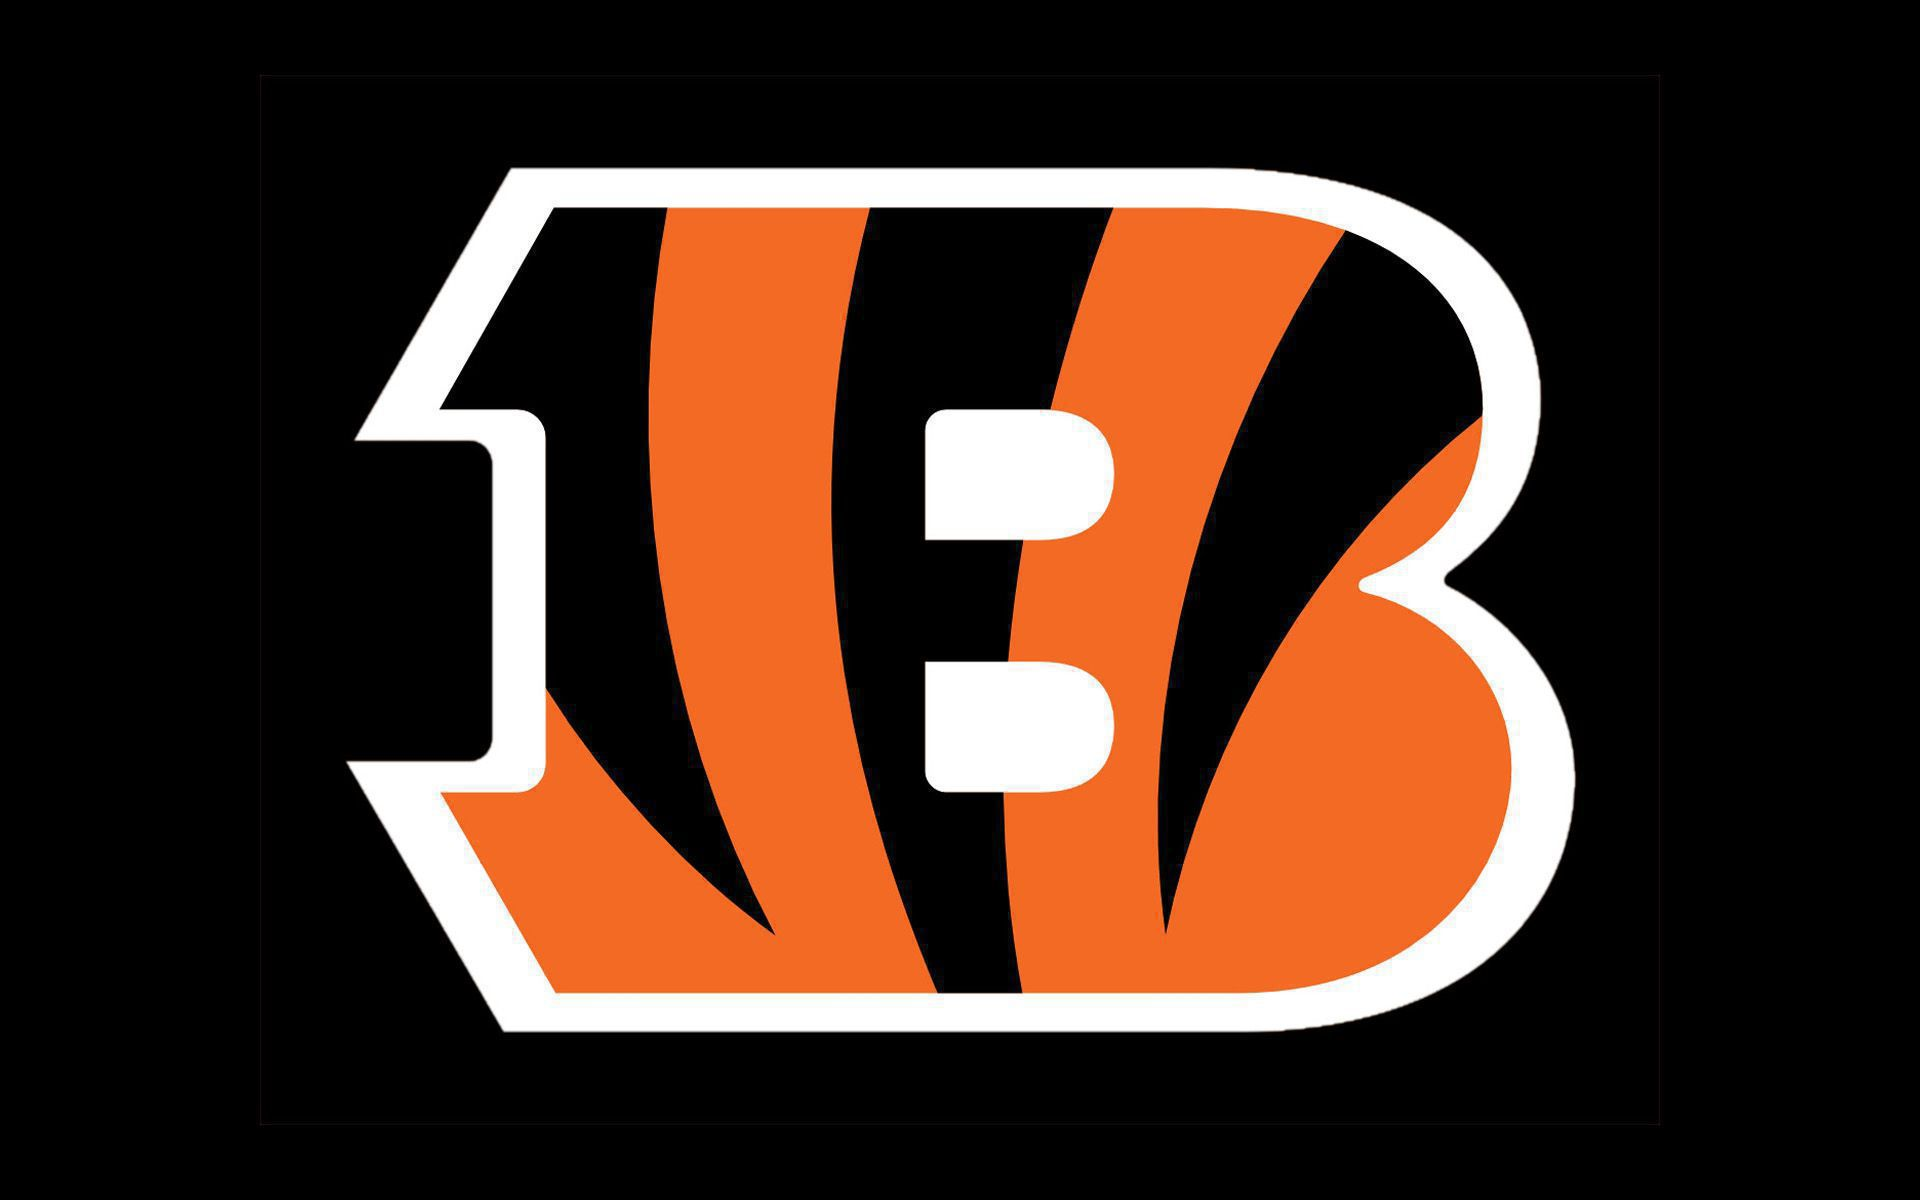 Bengals Wallpapers HD